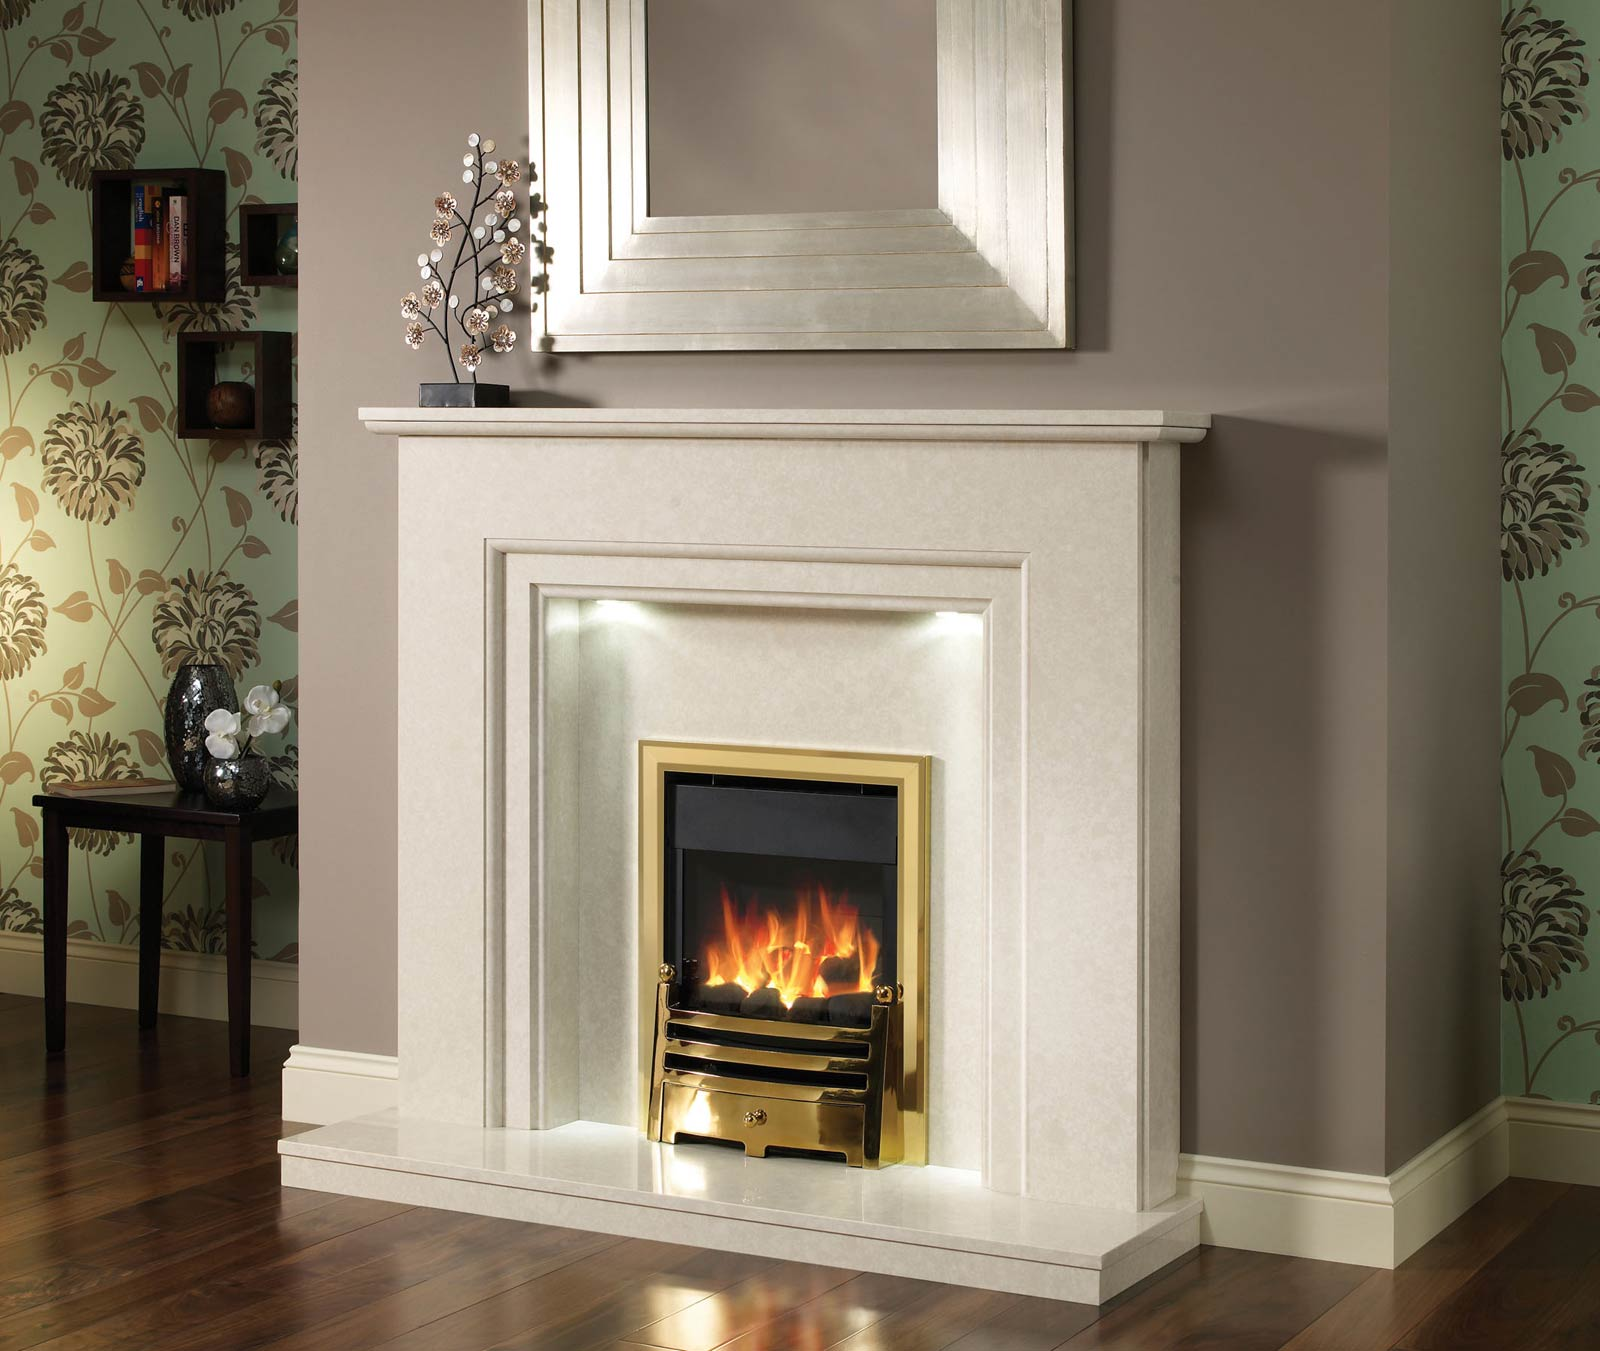 marble fireplace surround ideas photo - 9